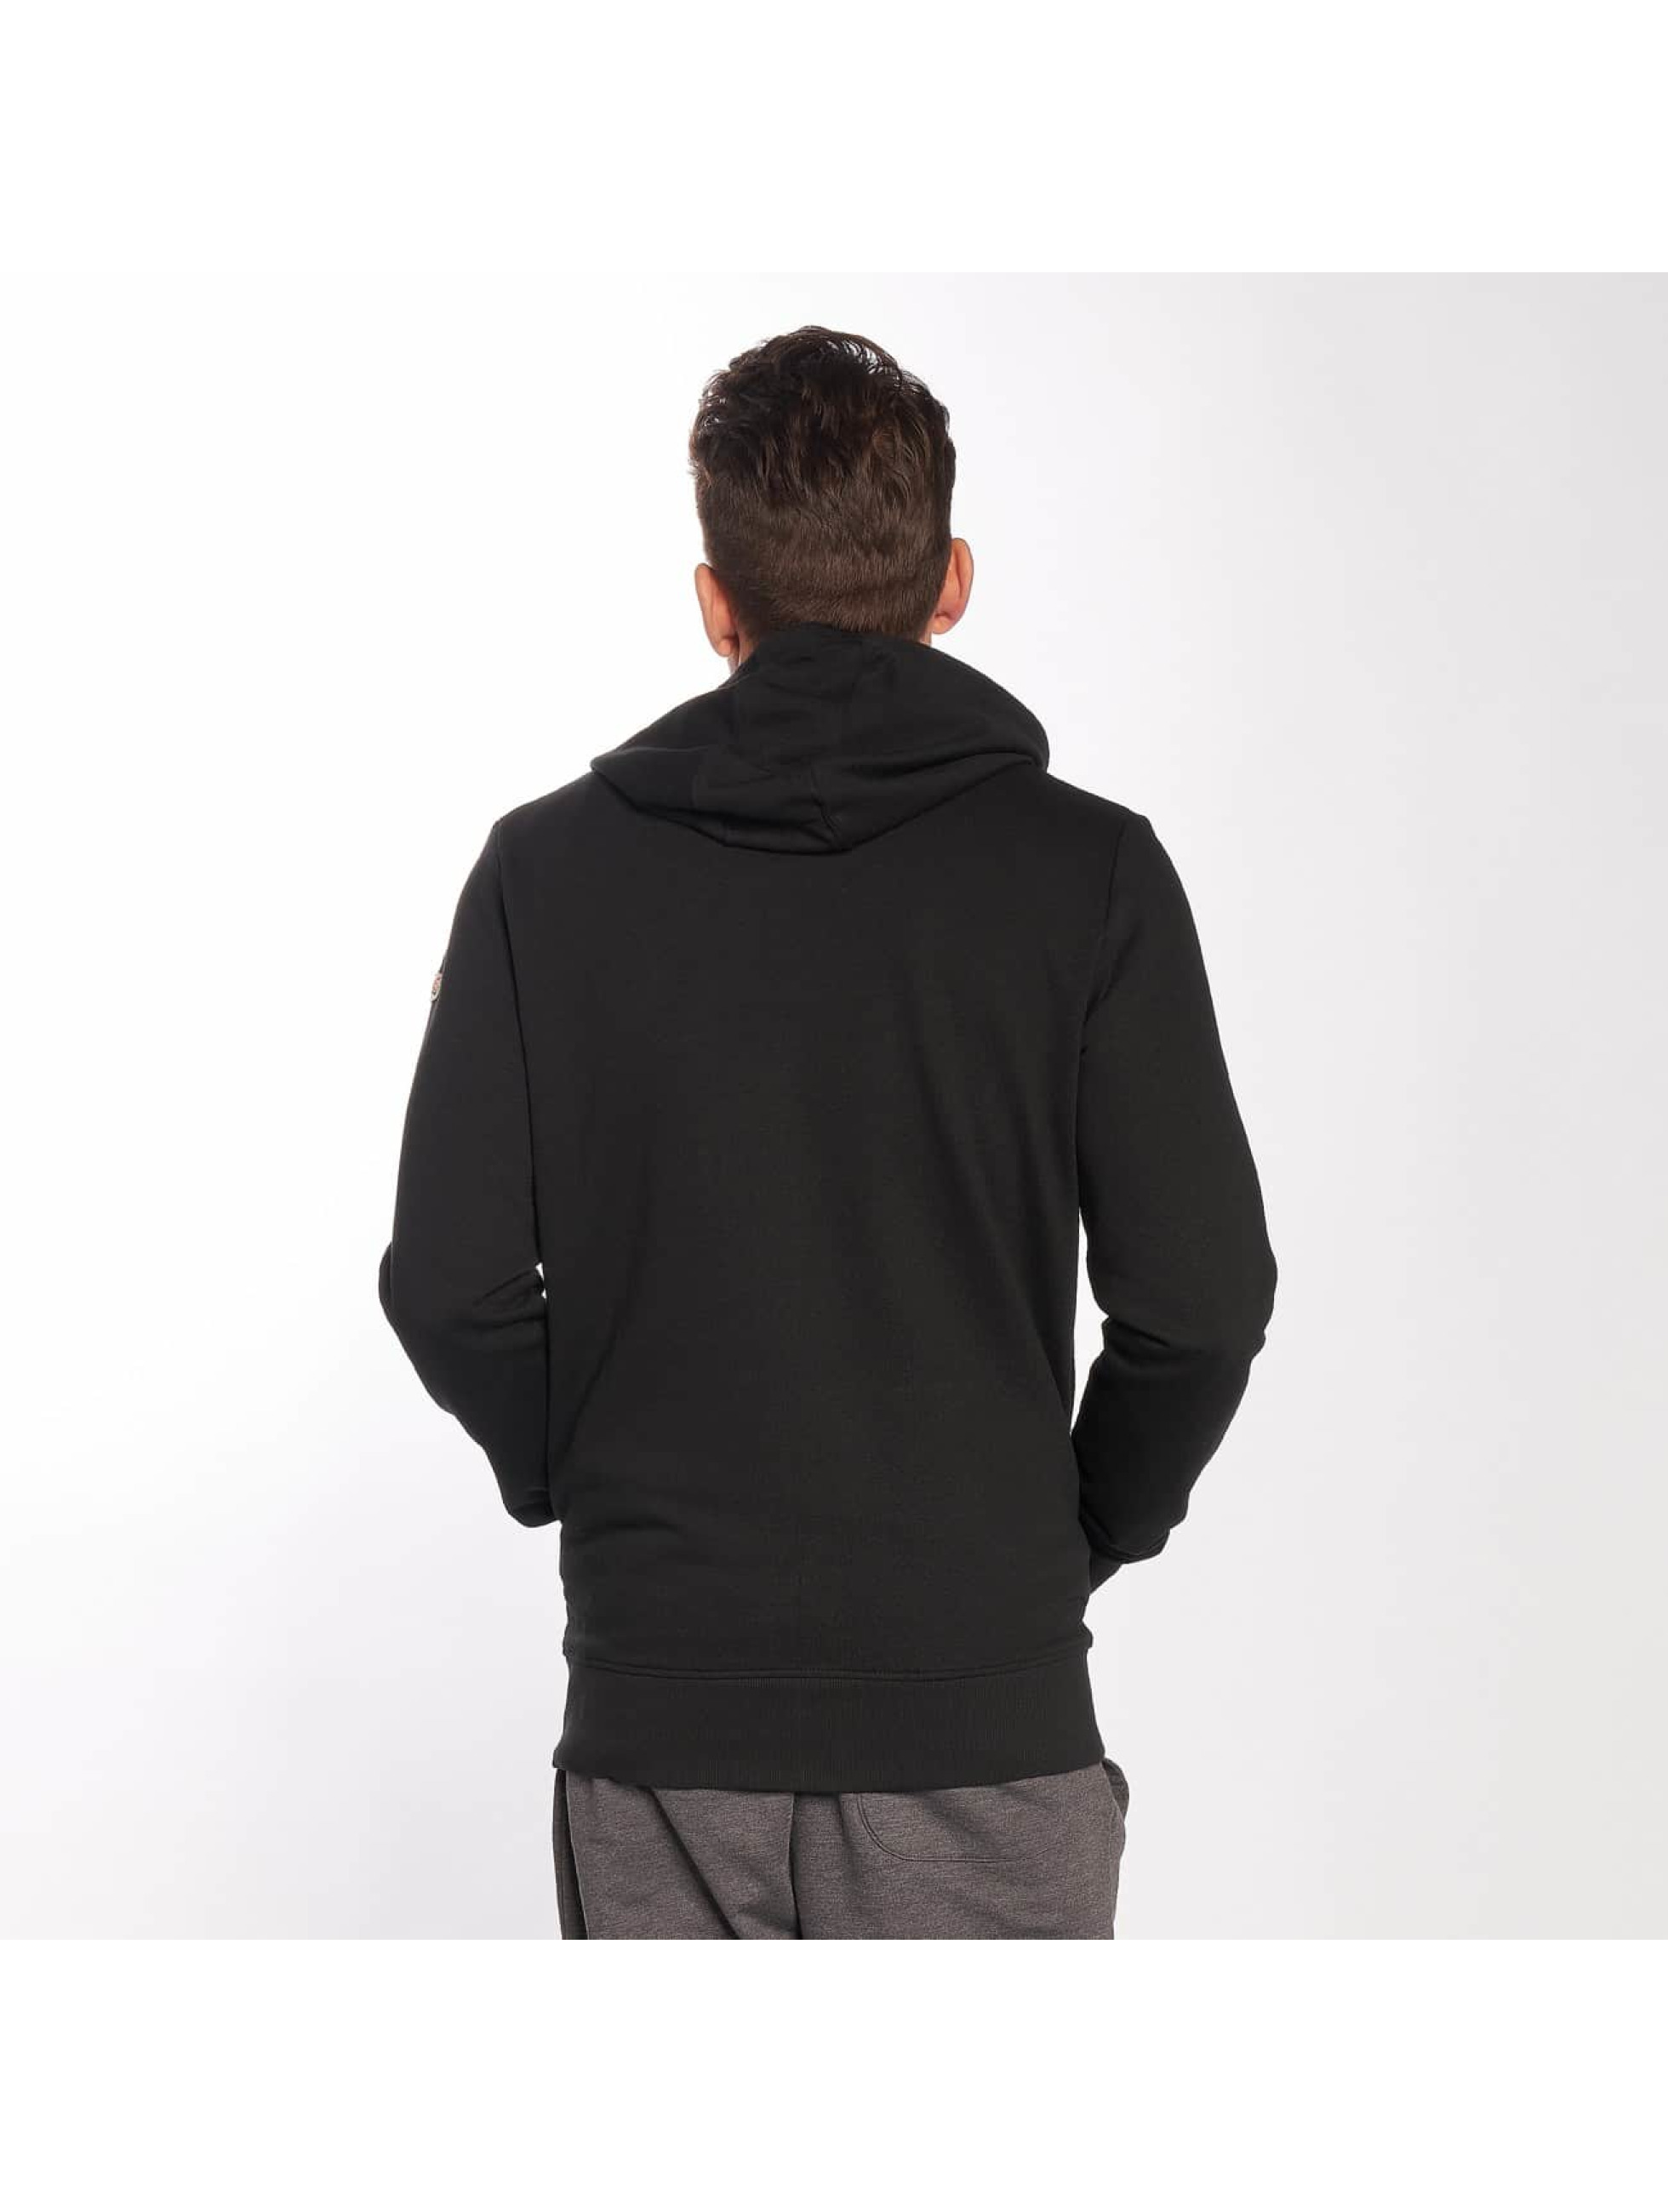 Lonsdale London Zip Hoodie Althorp black